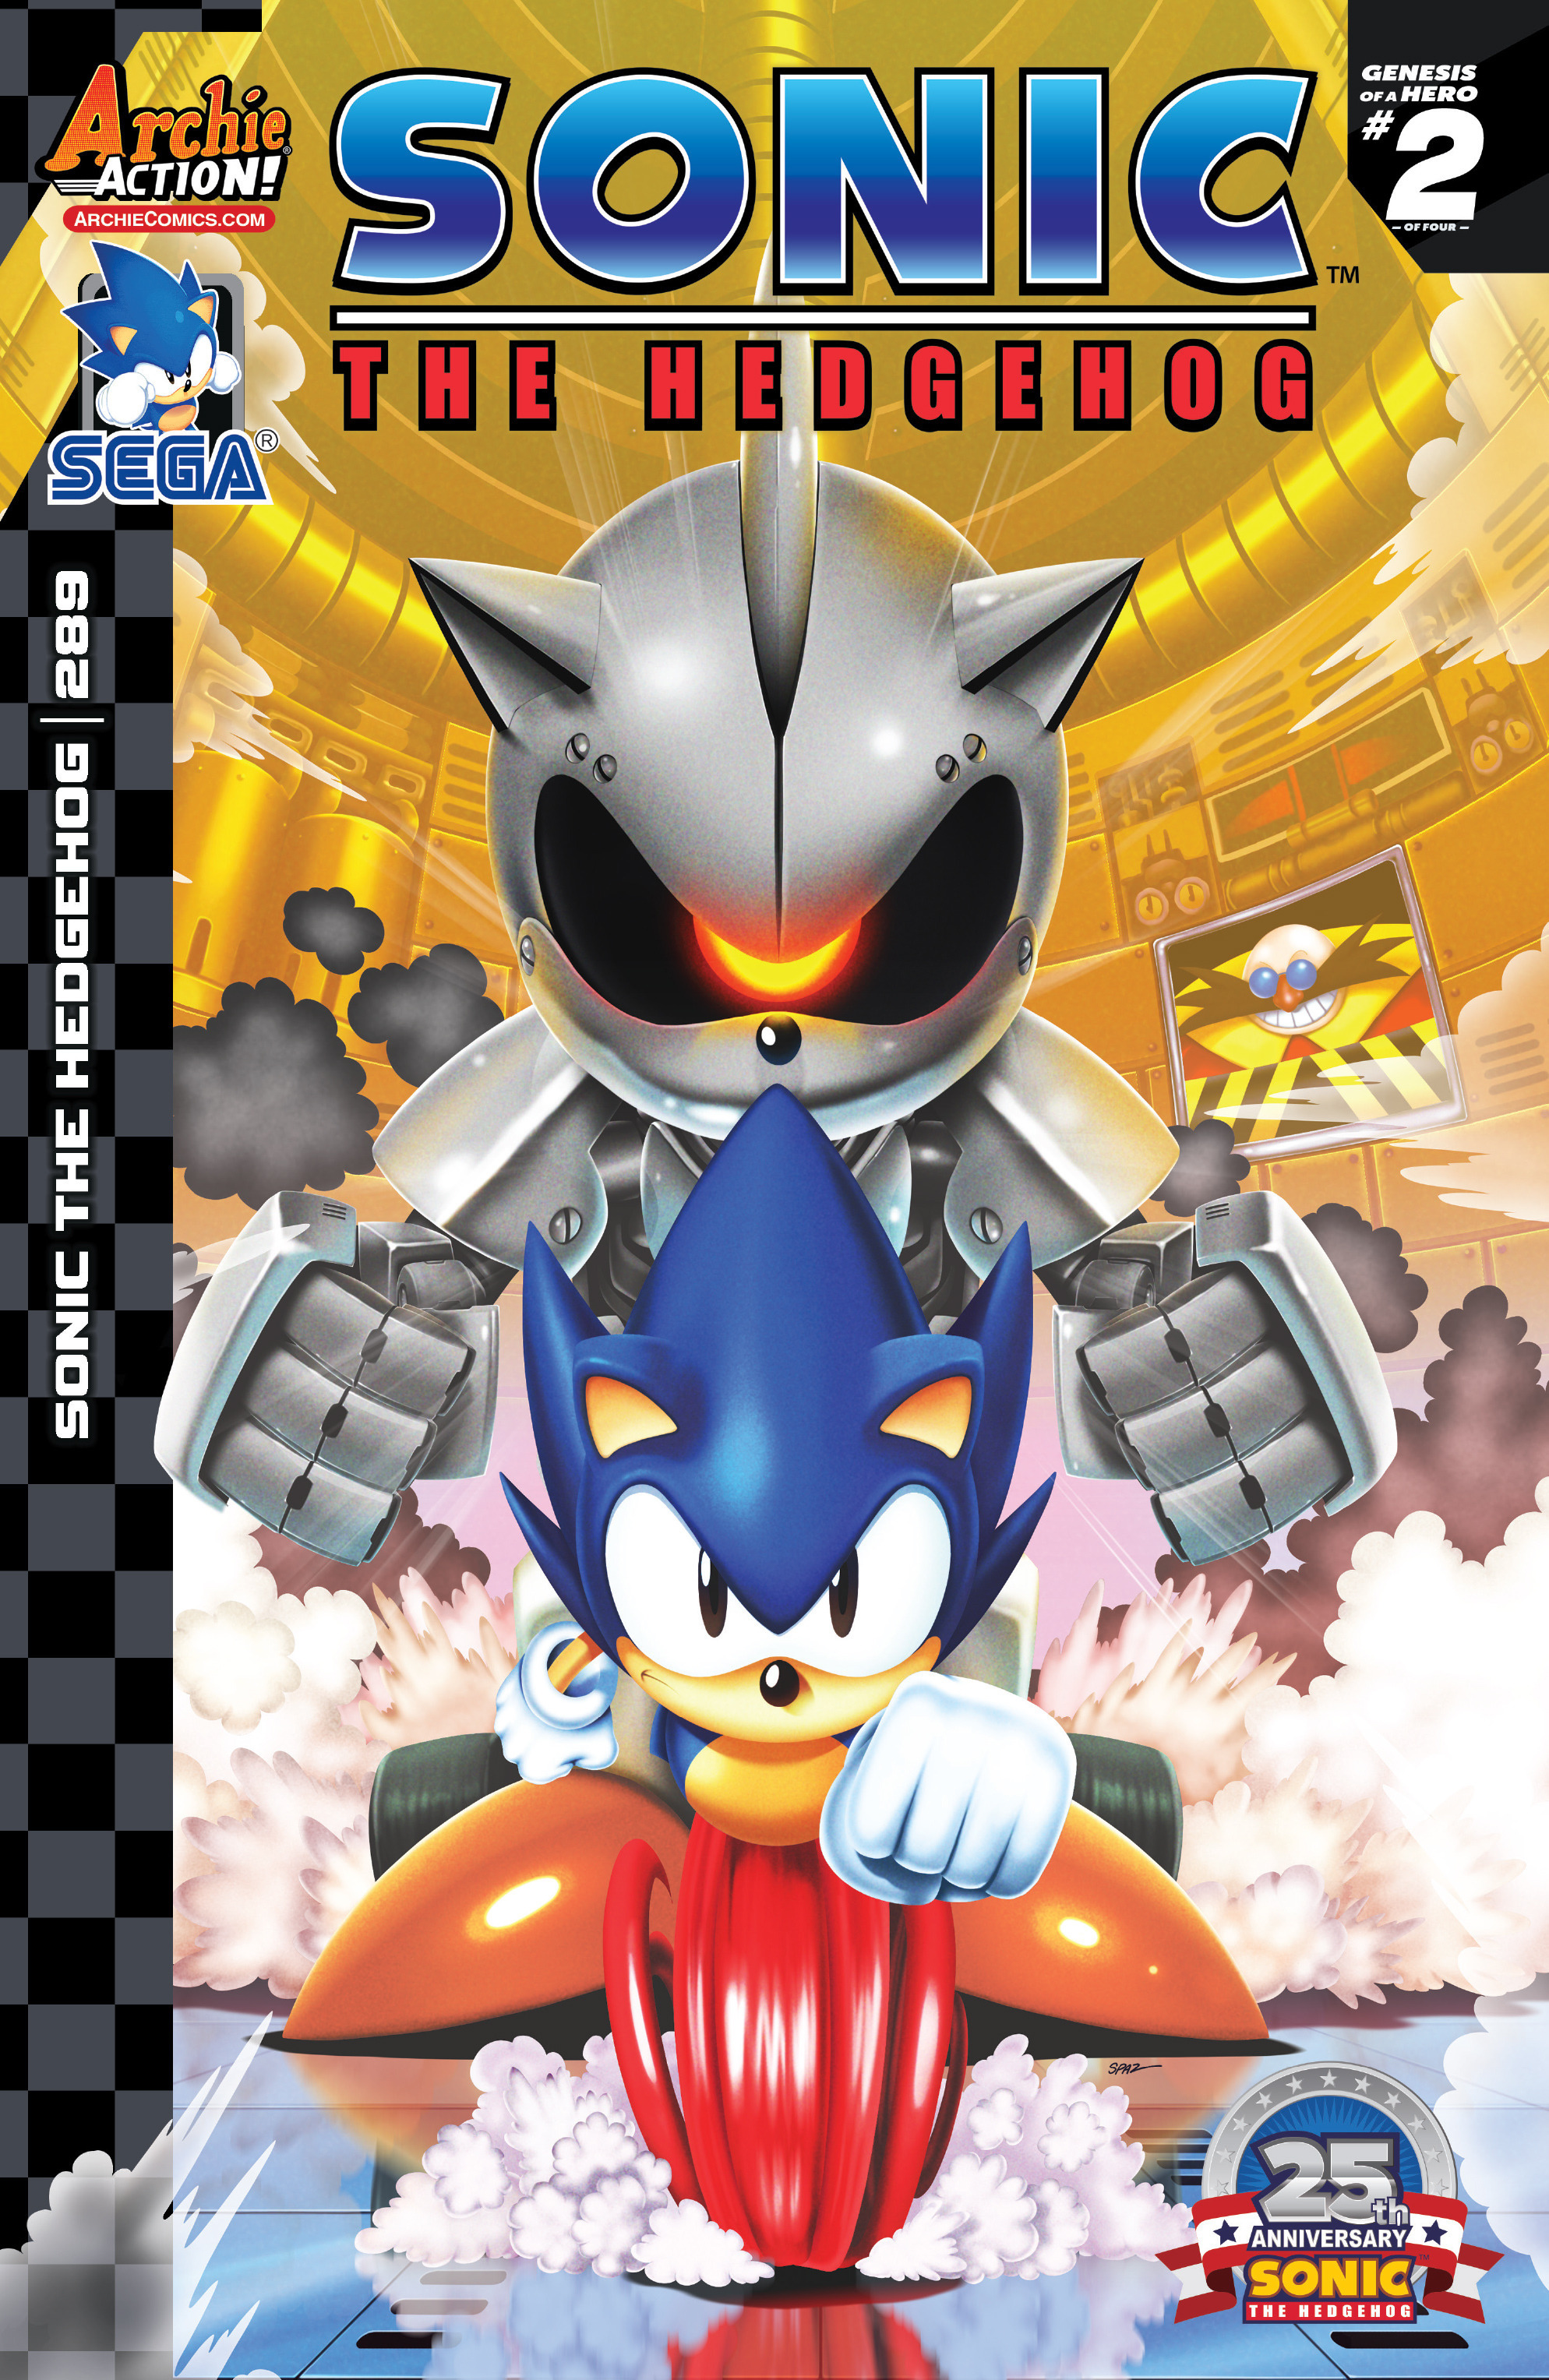 Sonic the Hedgehog #289